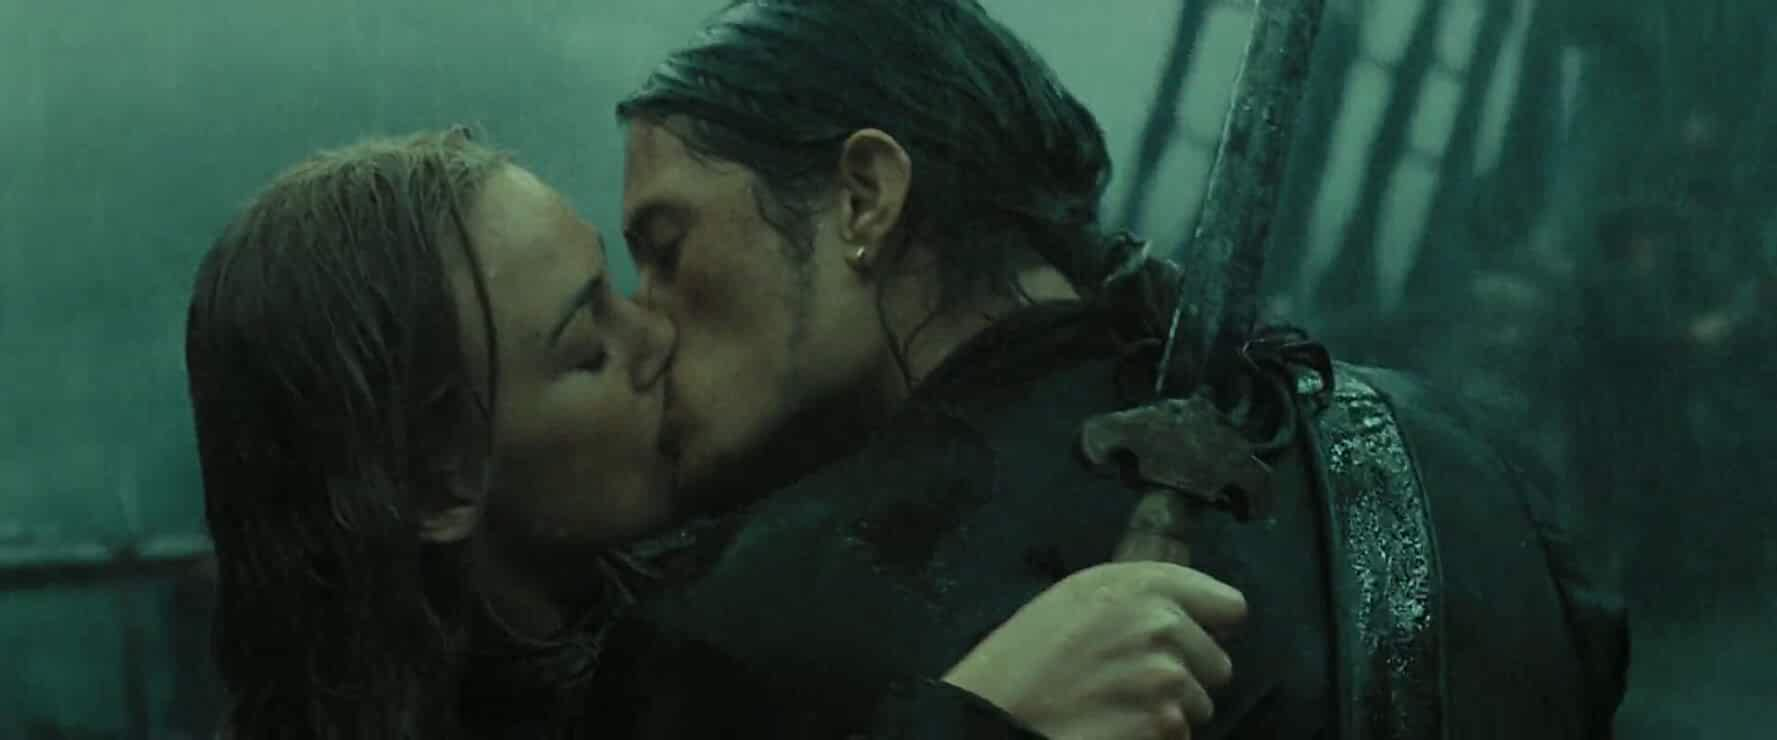 Orlando Bloom and Keira Knightley in Pirates of the Caribbean: At World's End (2007)